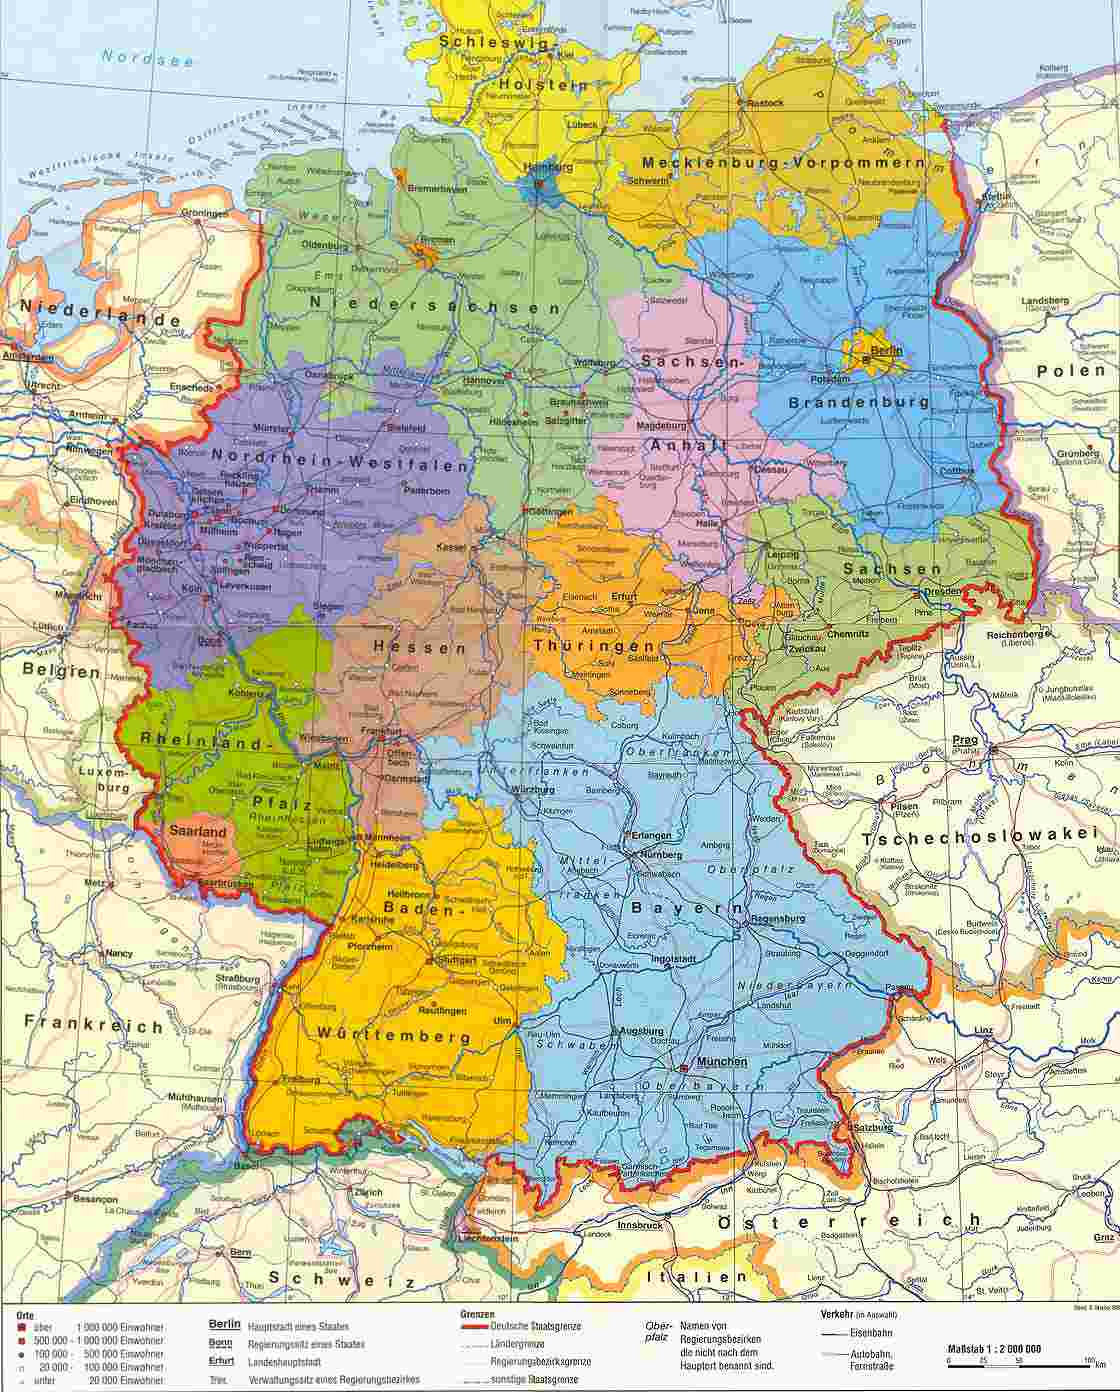 civil war political map with 90898 Historical Maps Of Germany on Occitania Catalonia Union 455620803 besides What Would A New Us Civil War moreover Map Of Germany With Cities And States further Country furthermore Racism Labour Market.